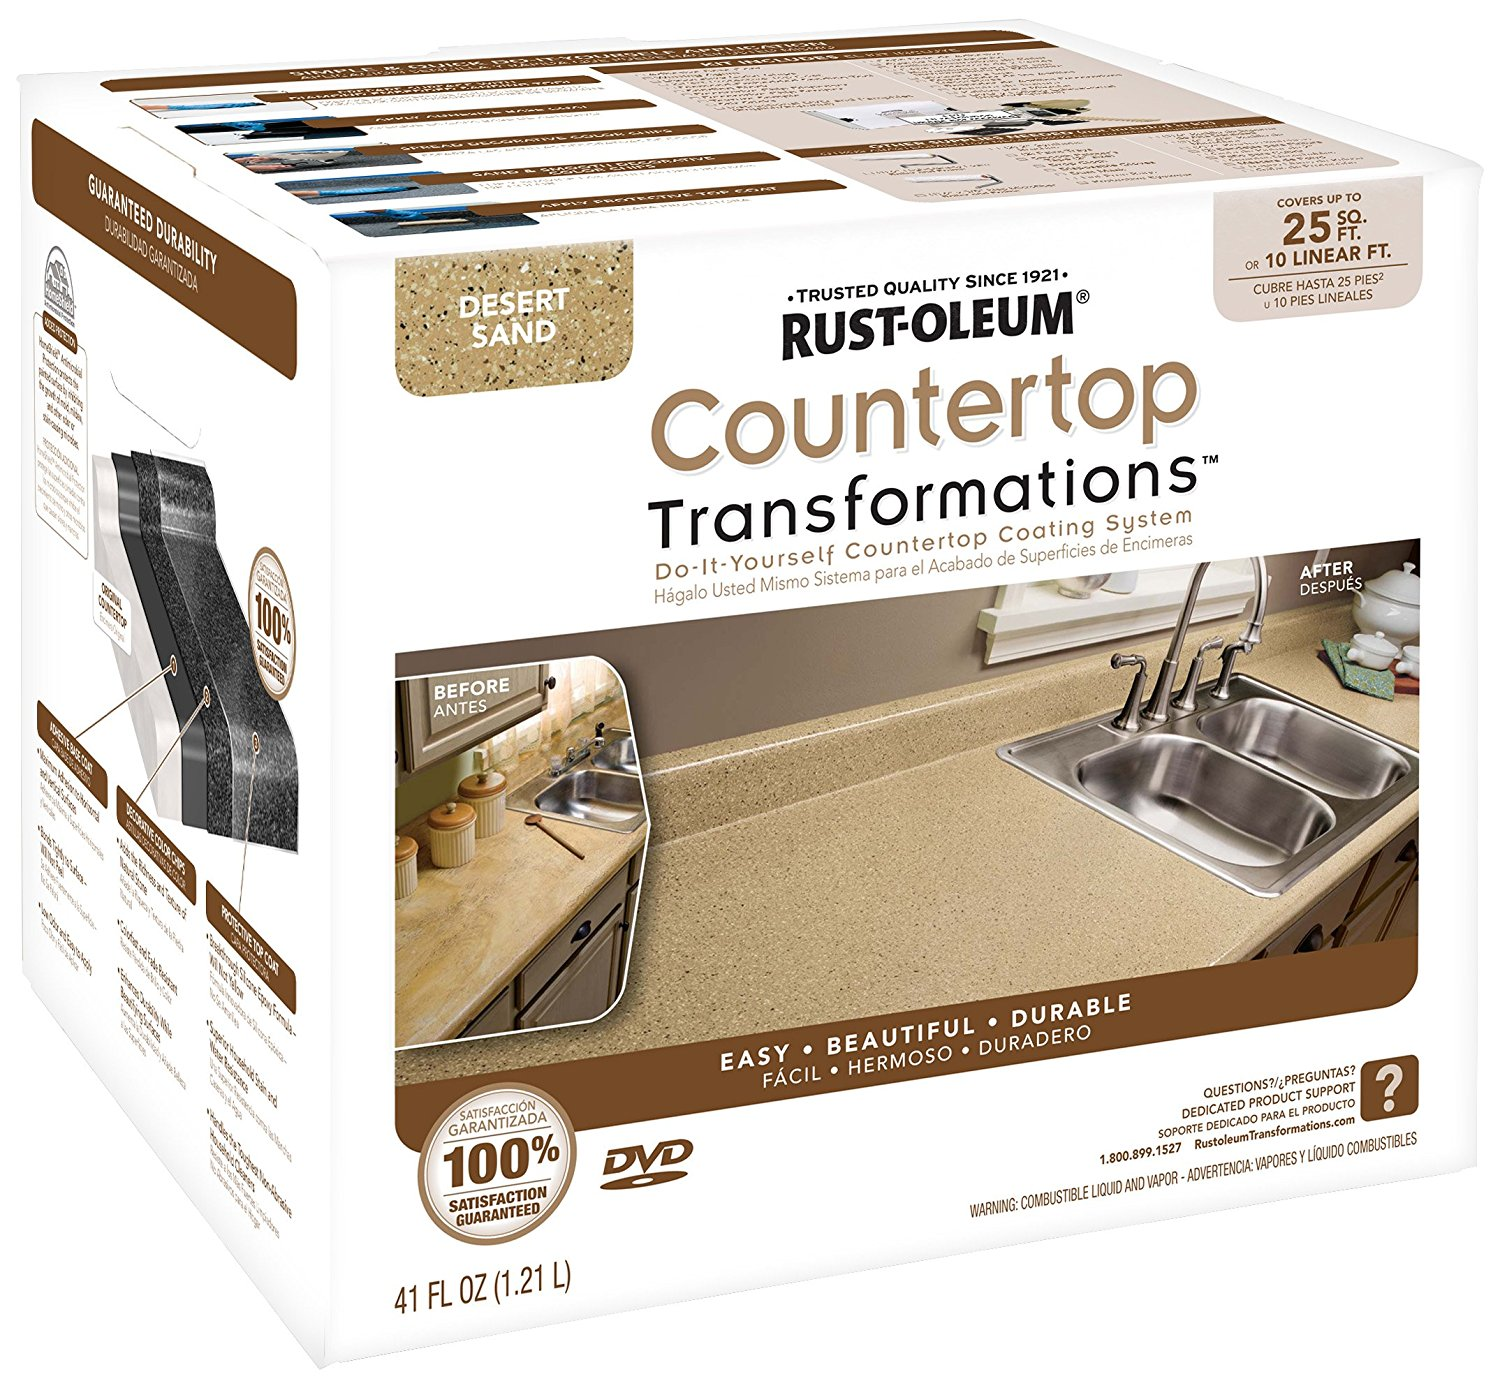 Rust Oleum Countertop Transformations 3 Year Review And